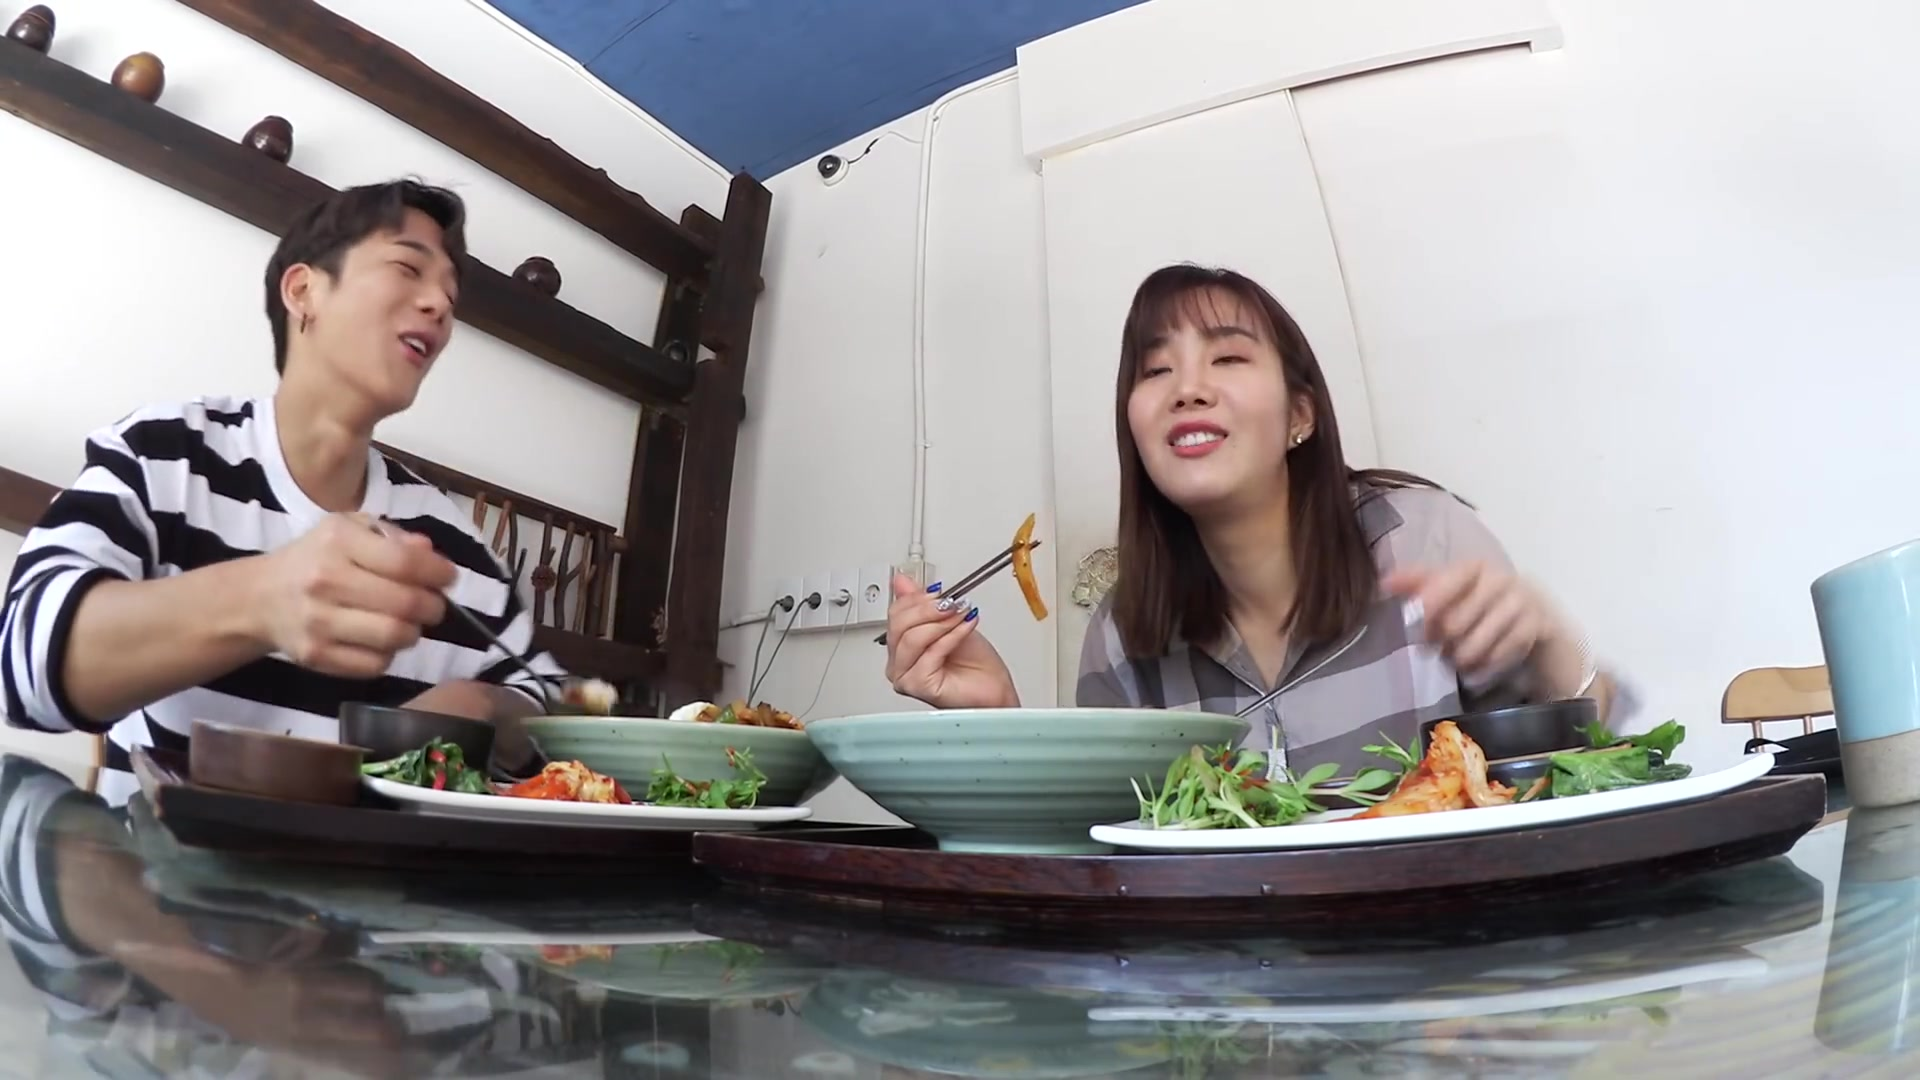 Joanday Episode 22: Lunch Date With Moma in Itaewon